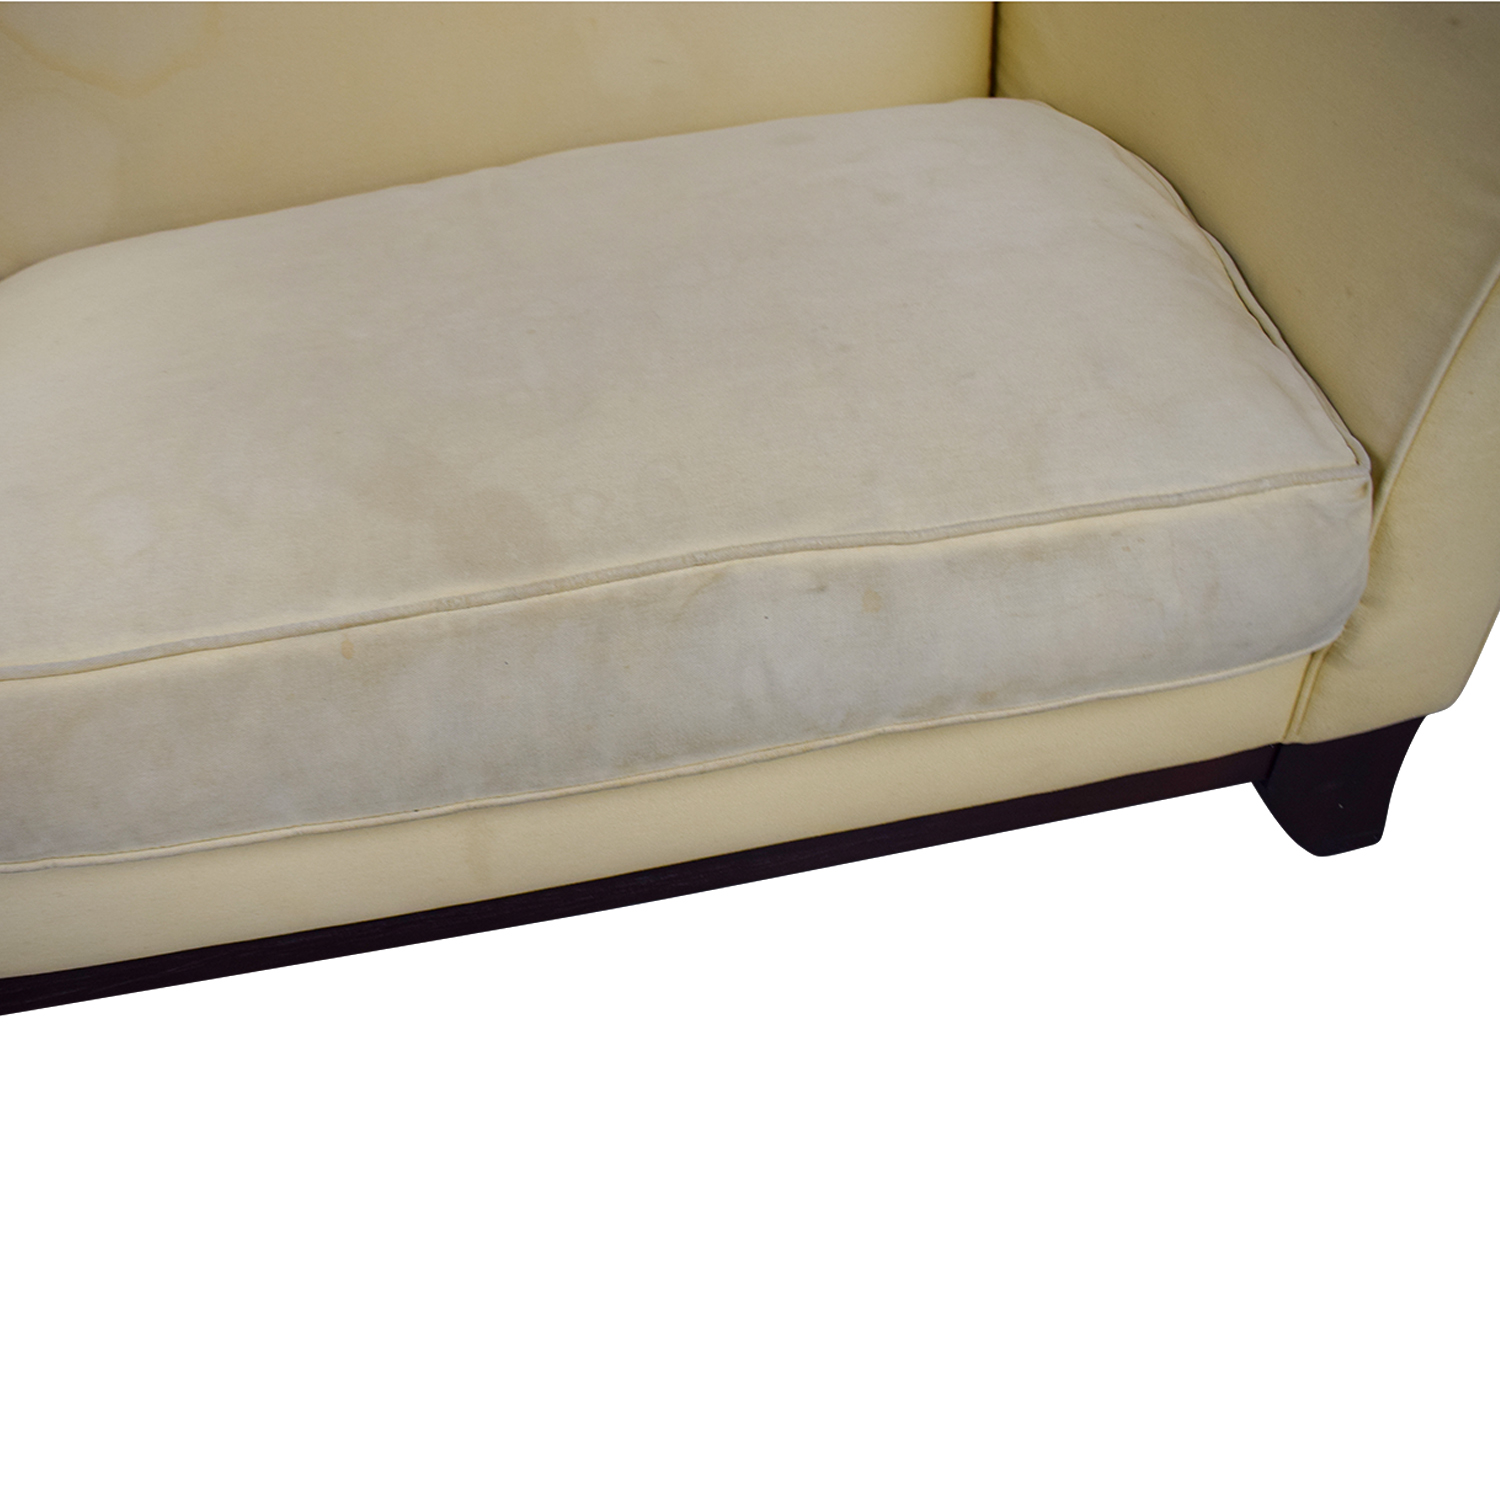 shop Pottery Barn Pottery Barn Beige Upholstered Two-Cushion Sofa online